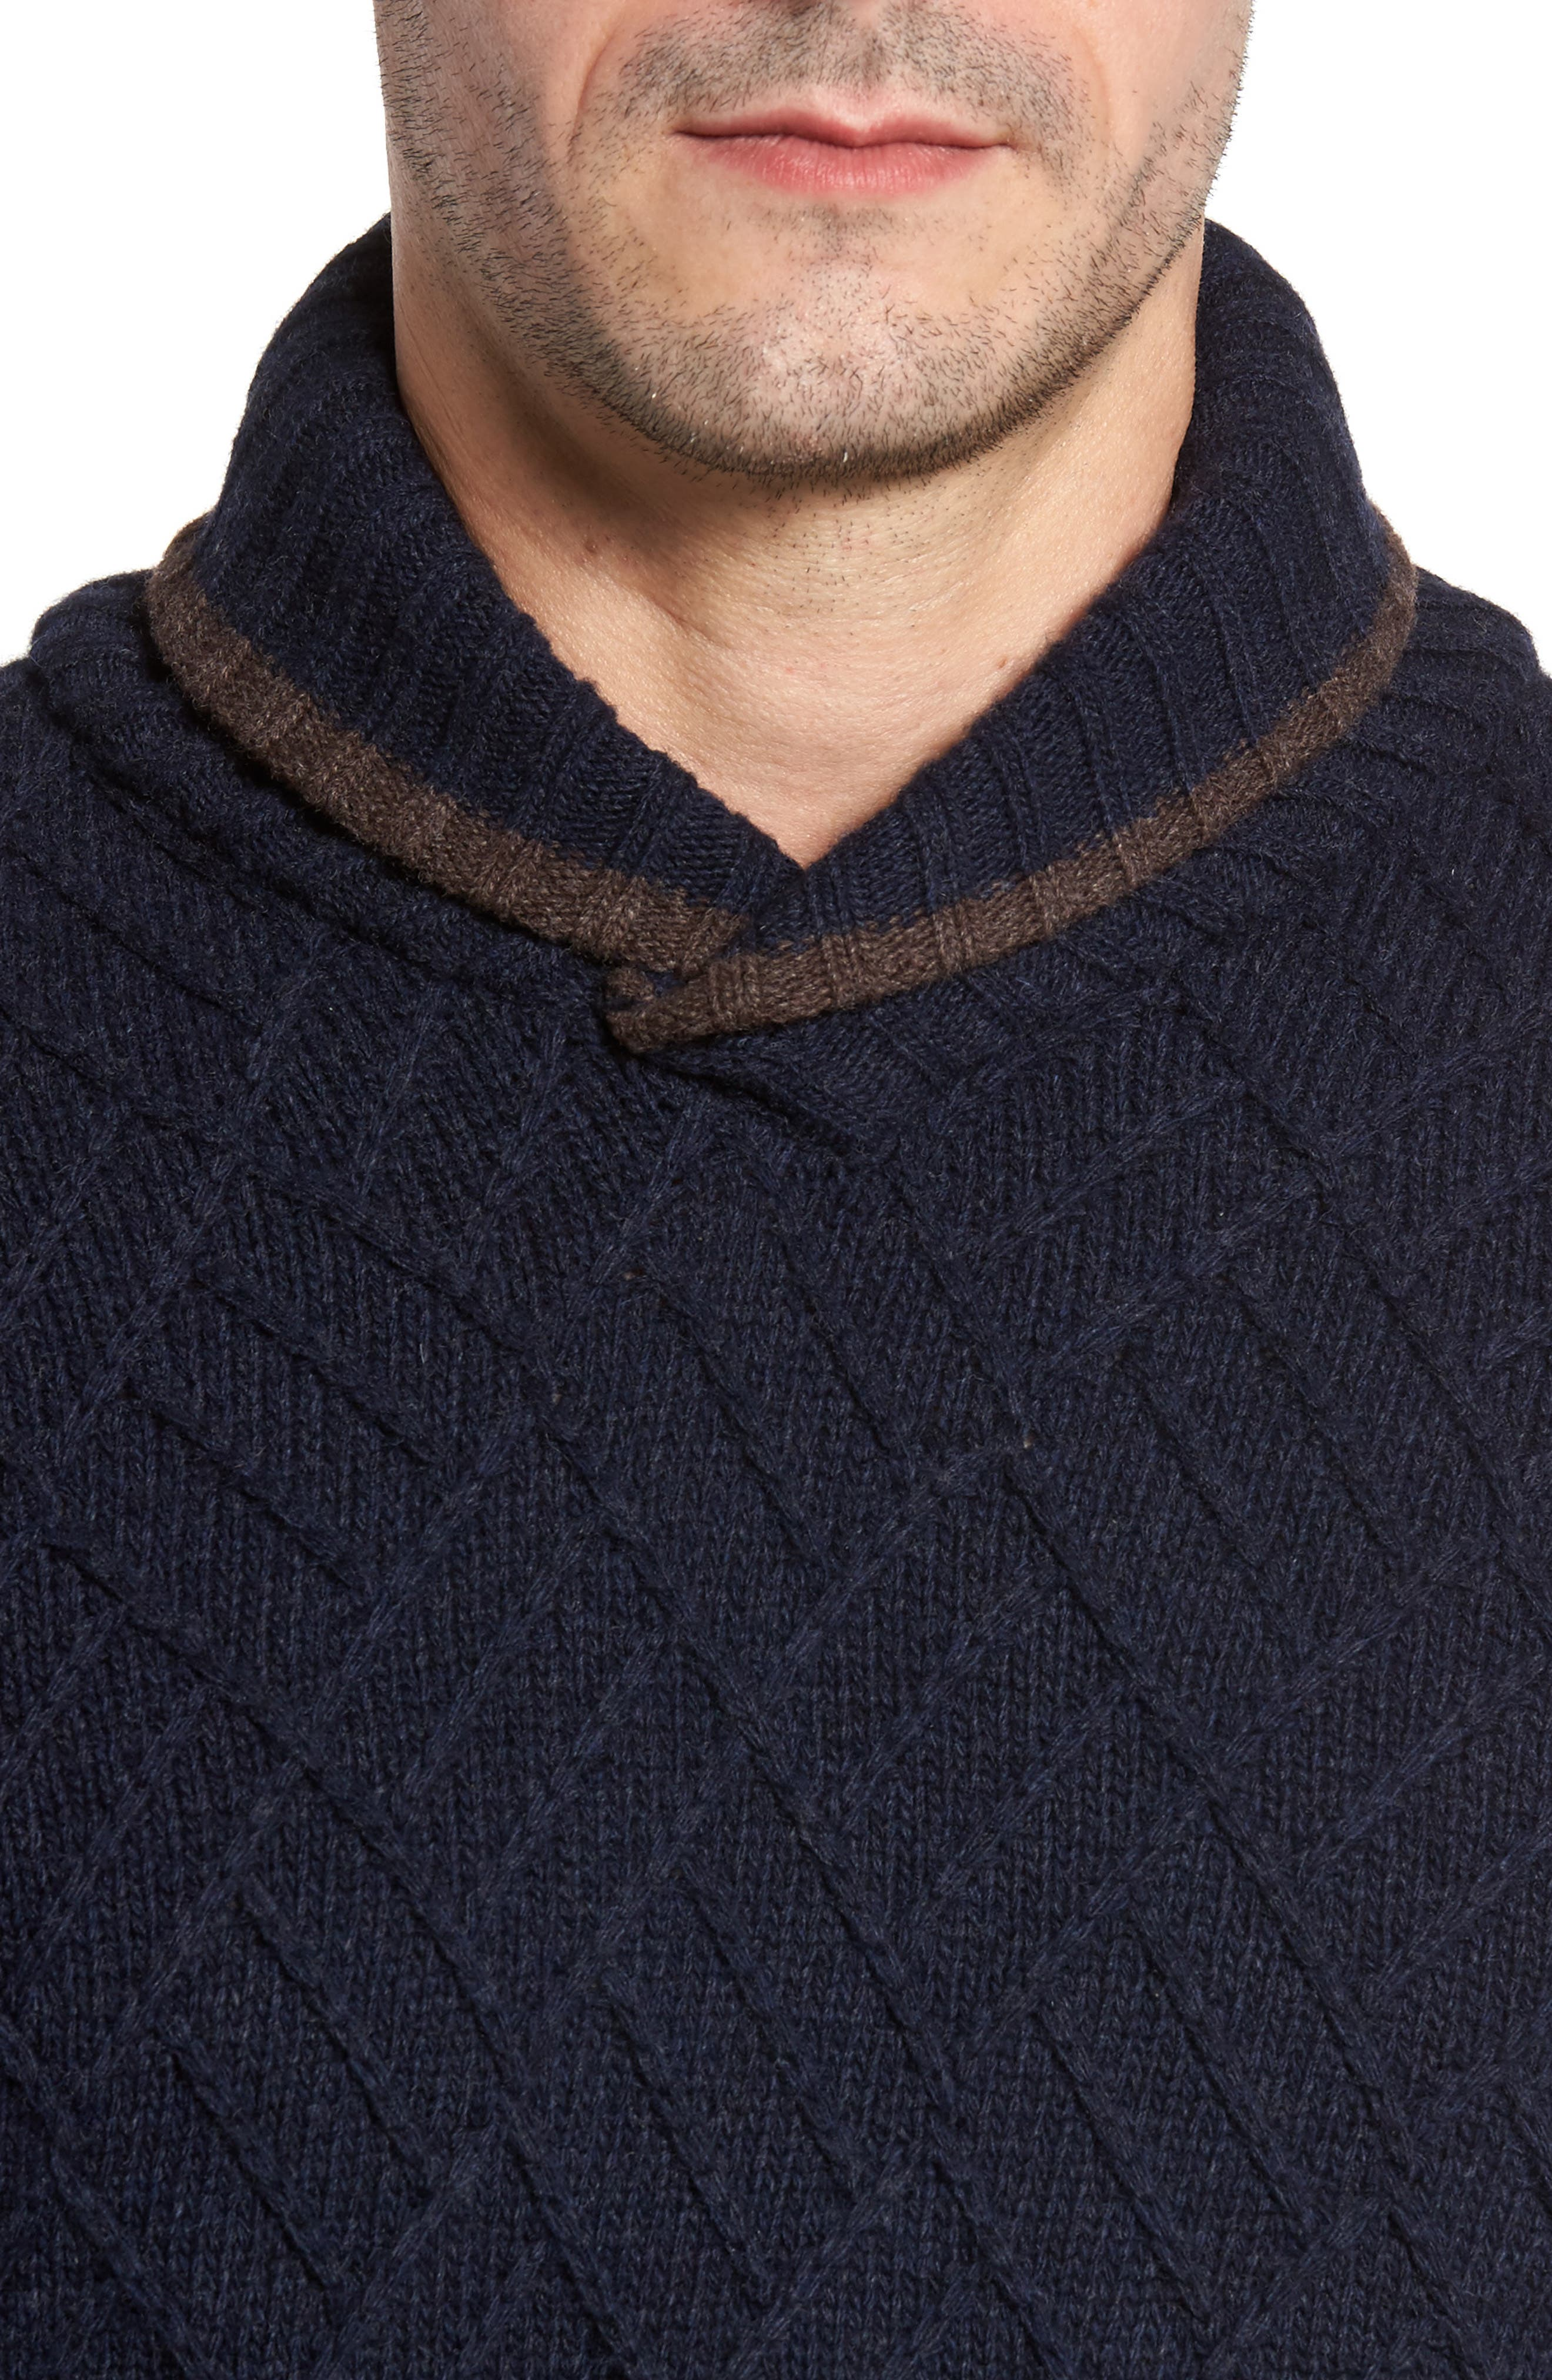 Textured Wool Sweater,                             Alternate thumbnail 4, color,                             Navy